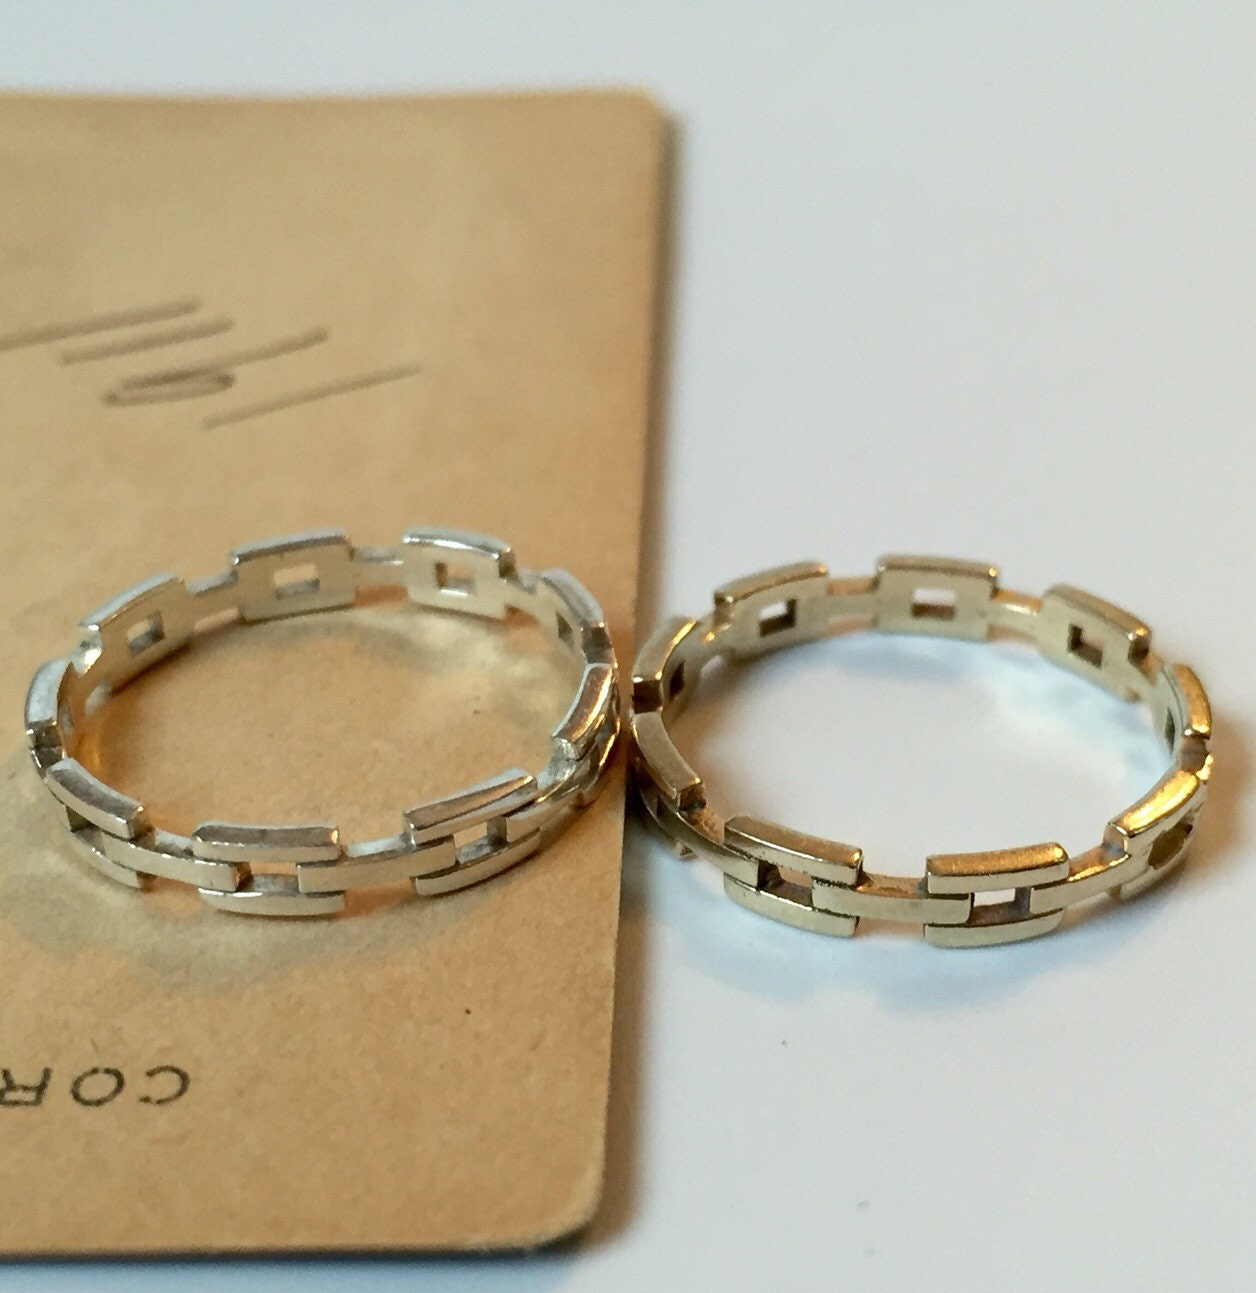 Wedding Ring On Chain Boy Or Girl: Chain Link Band Stacking Ring Wedding Band Made To Order